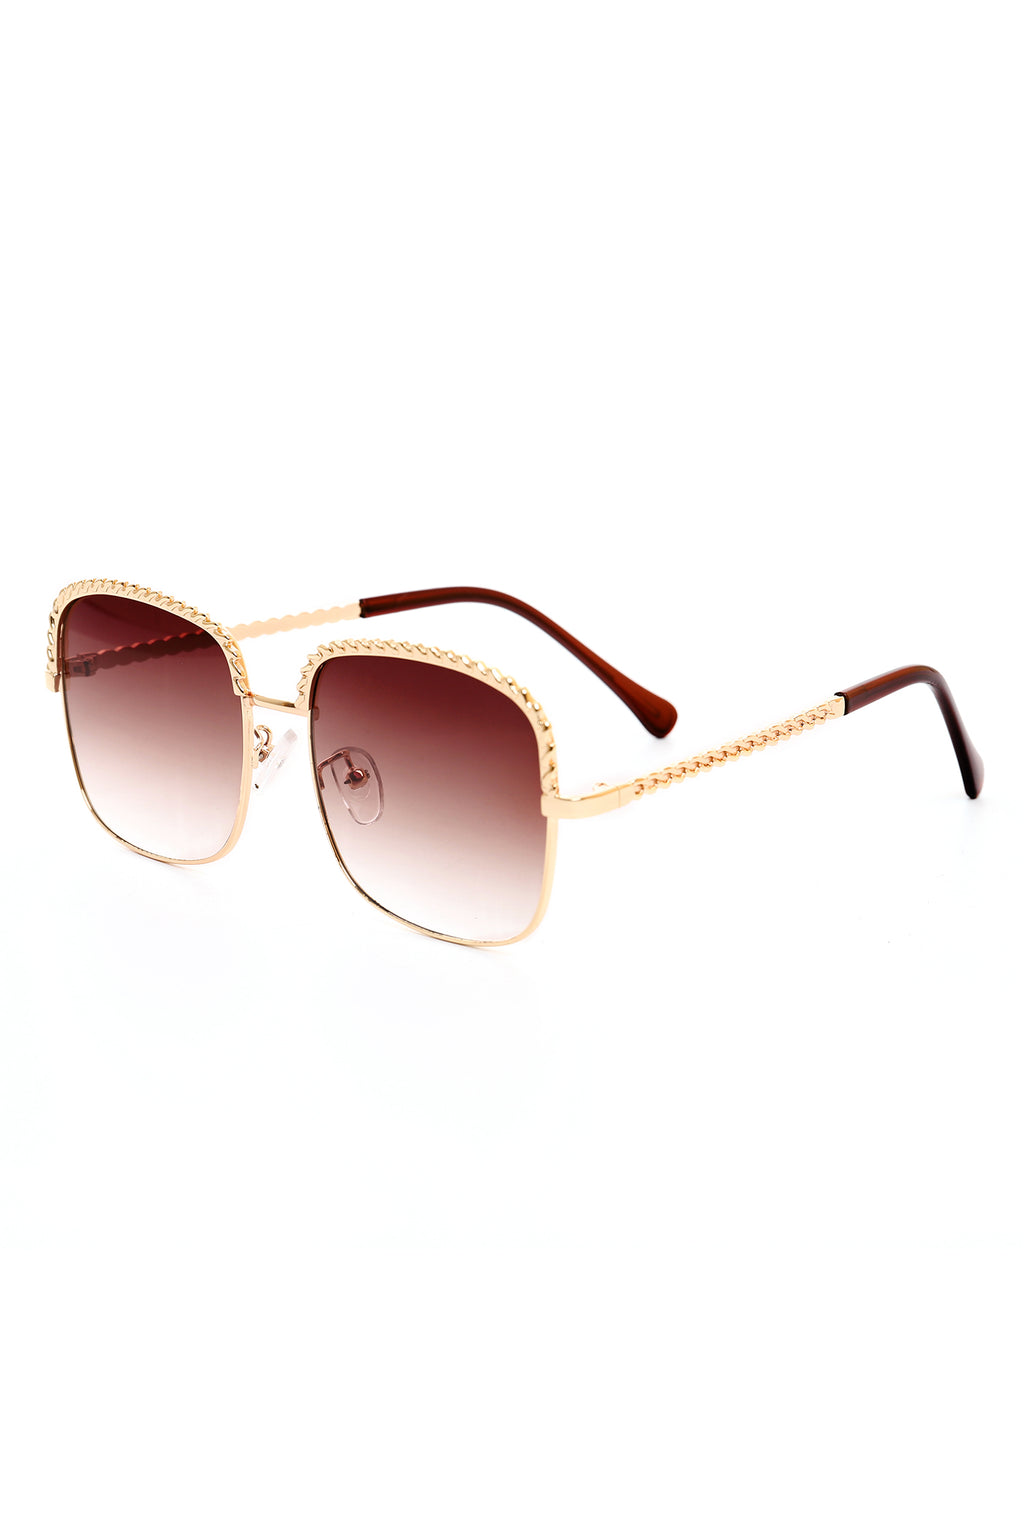 EMBELLISHED SQUARE SUNNIES -COFFEE